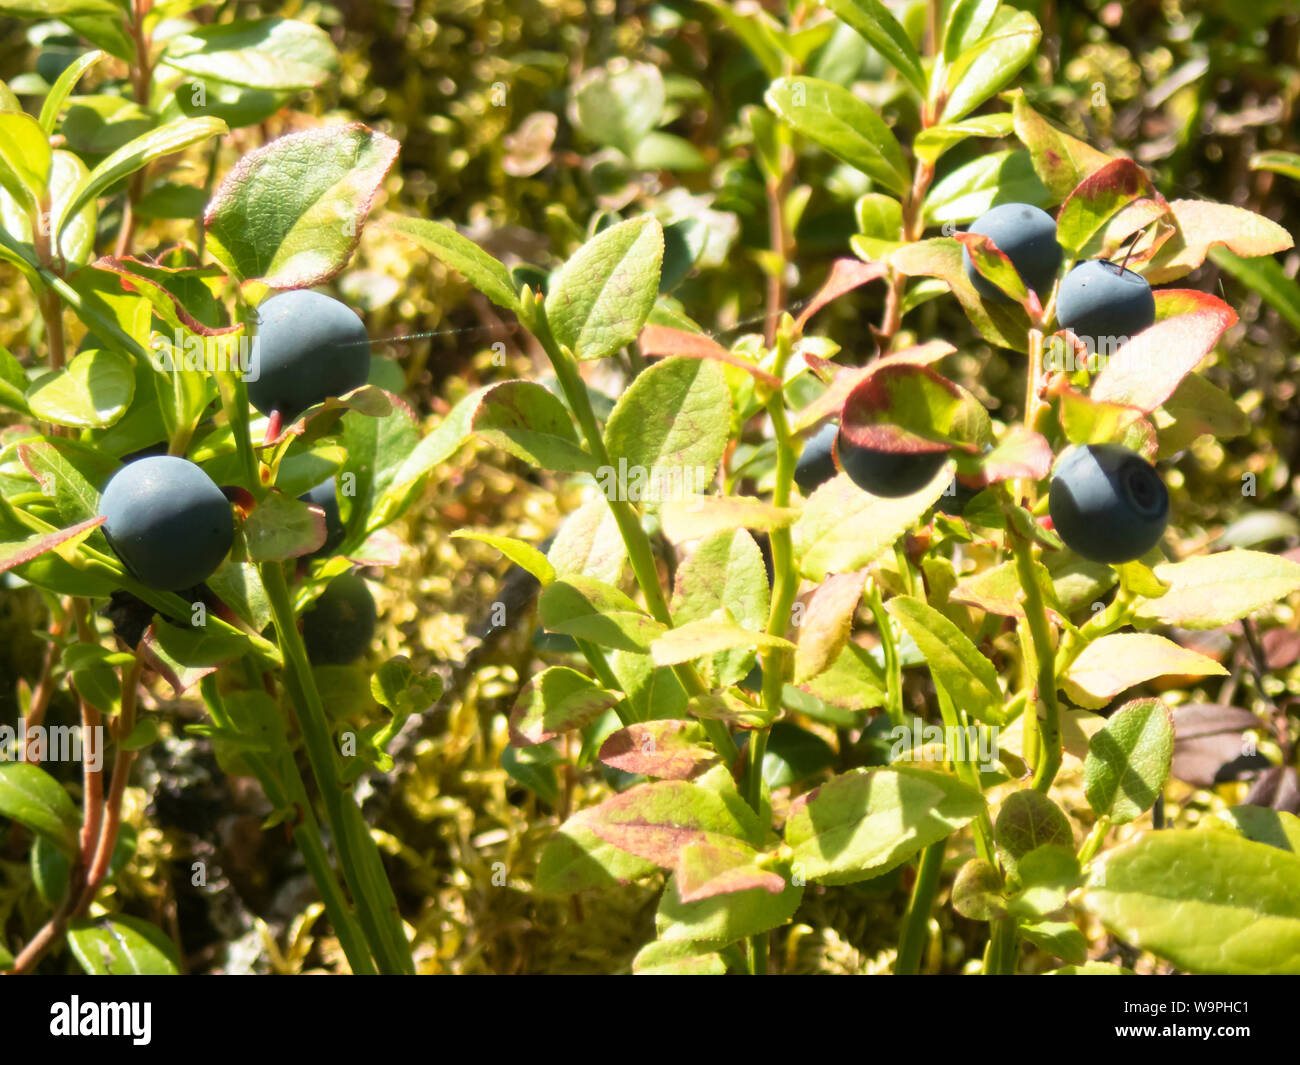 Finnish blueberry berries harvest time,Bothnian Bay, North Ostrobothnia, Hailuoto island, Finland Stock Photo